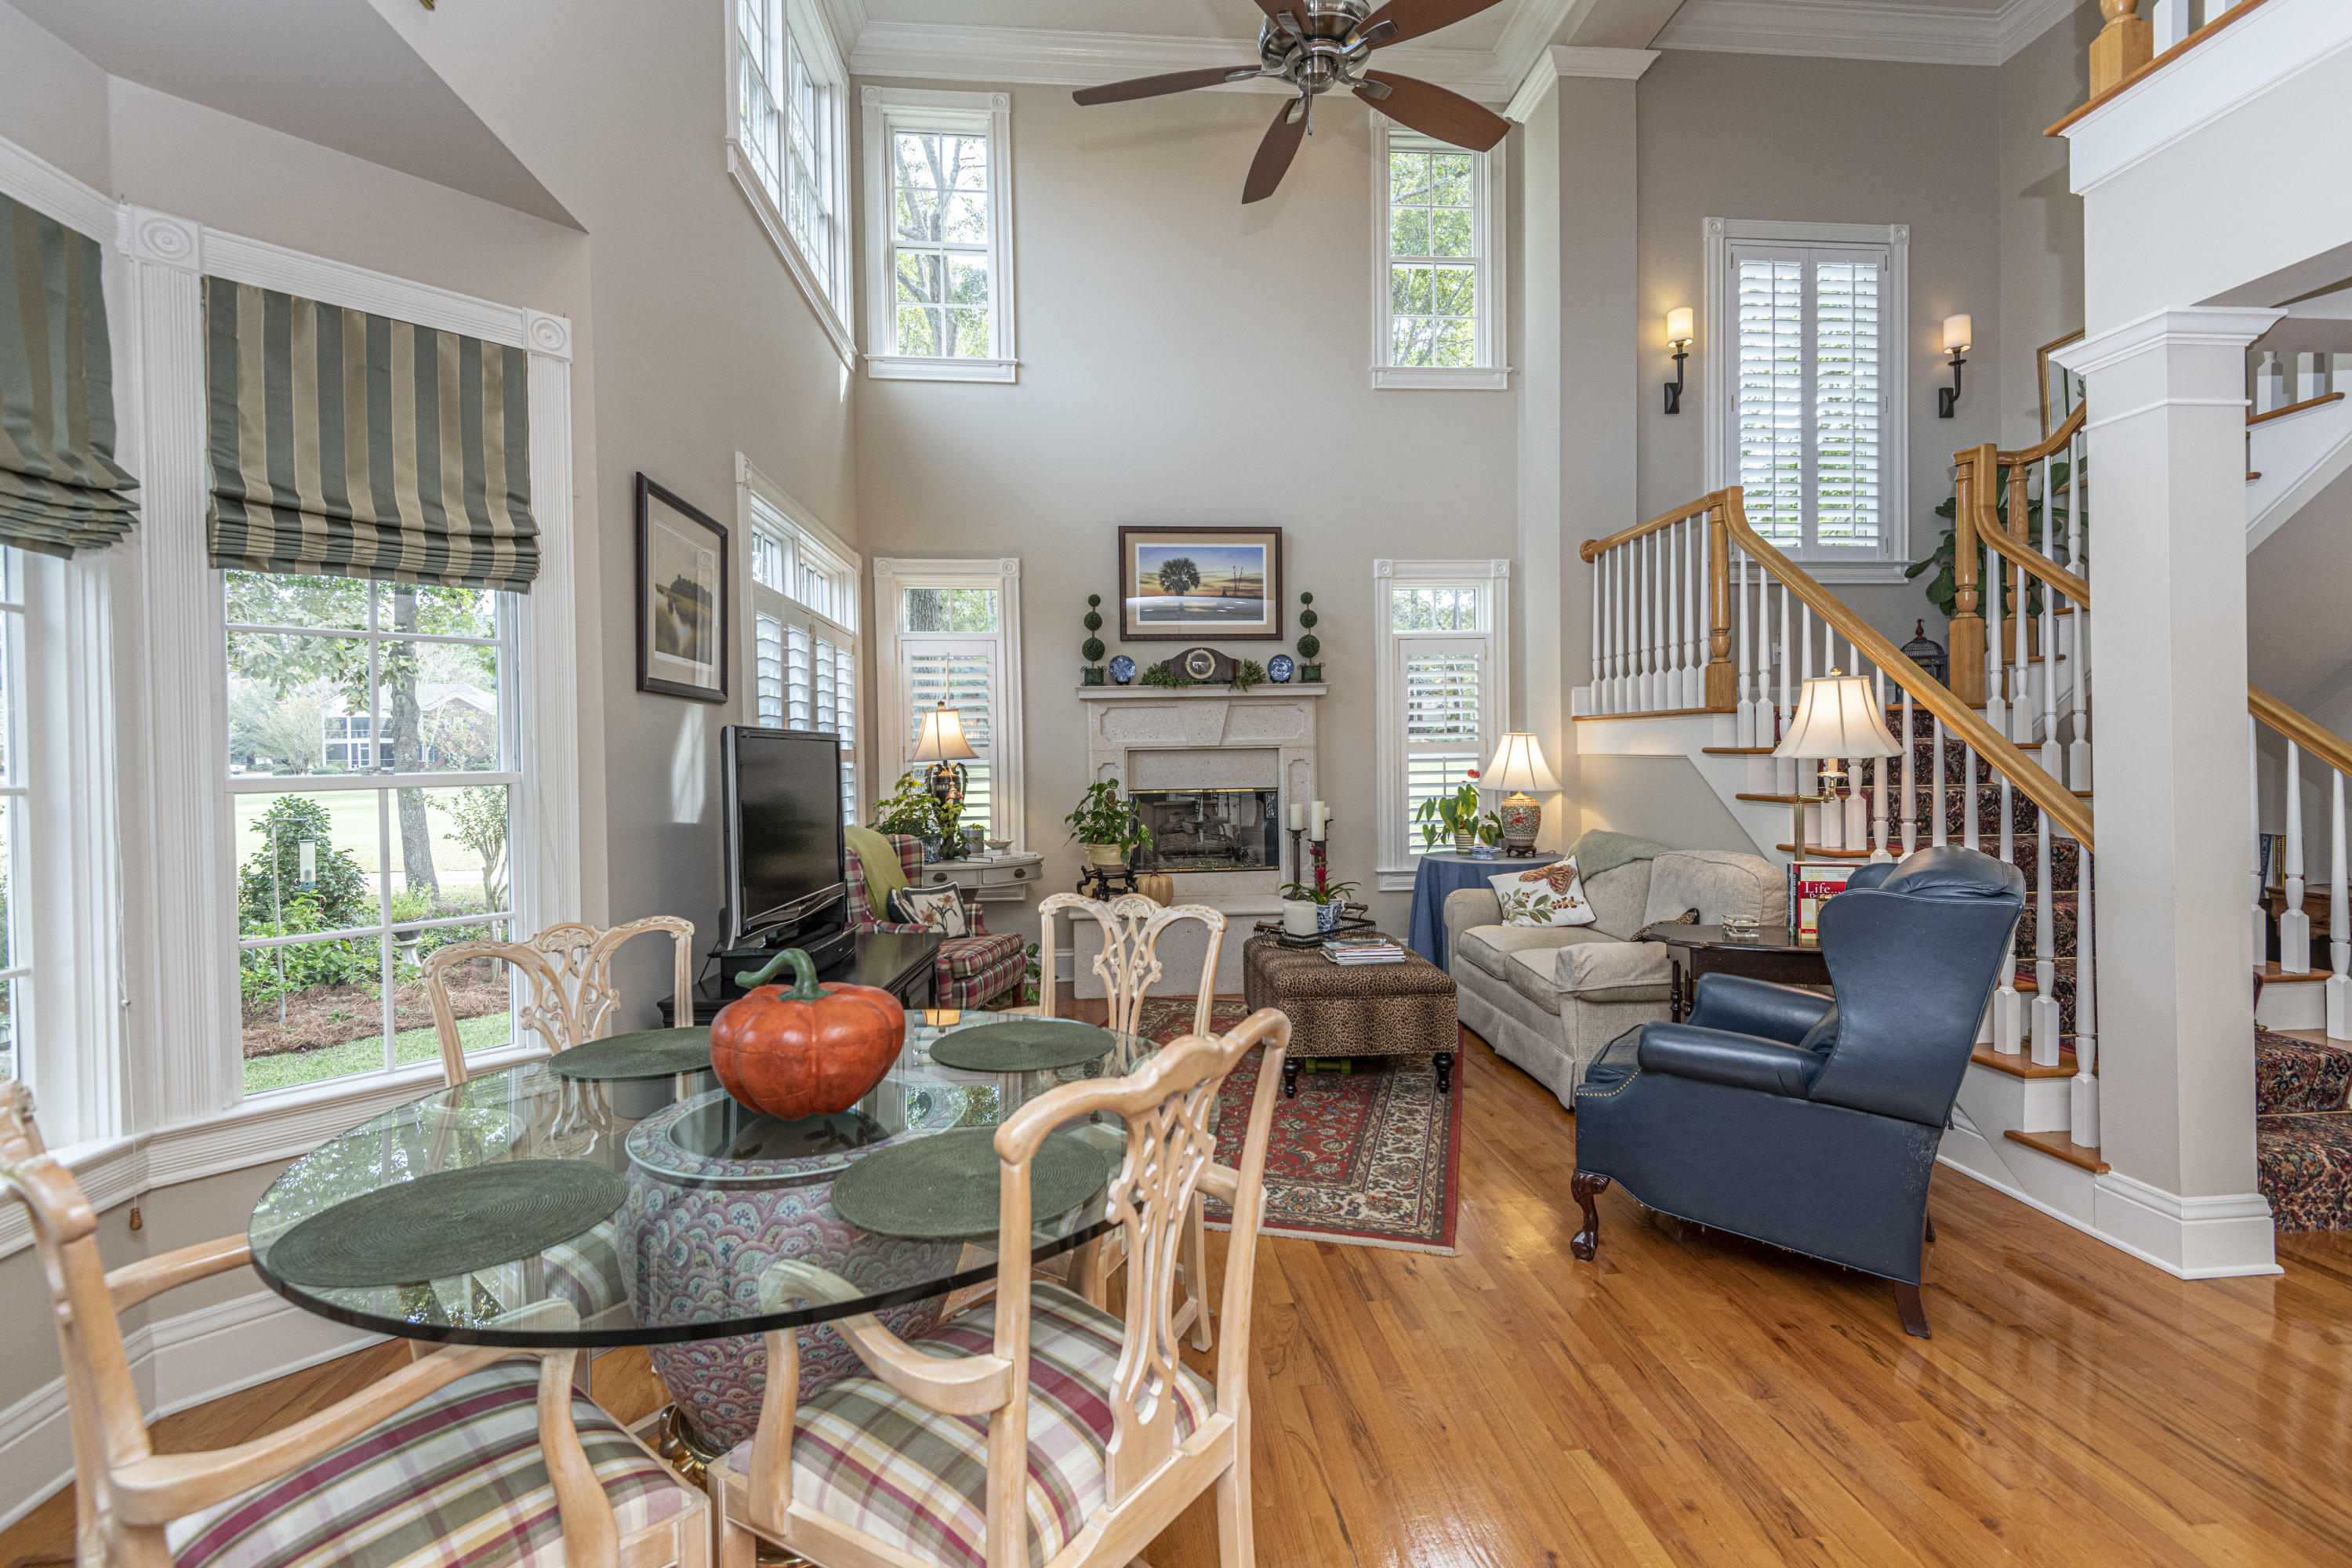 Coosaw Creek Country Club Homes For Sale - 8642 Fairway Woods, North Charleston, SC - 11